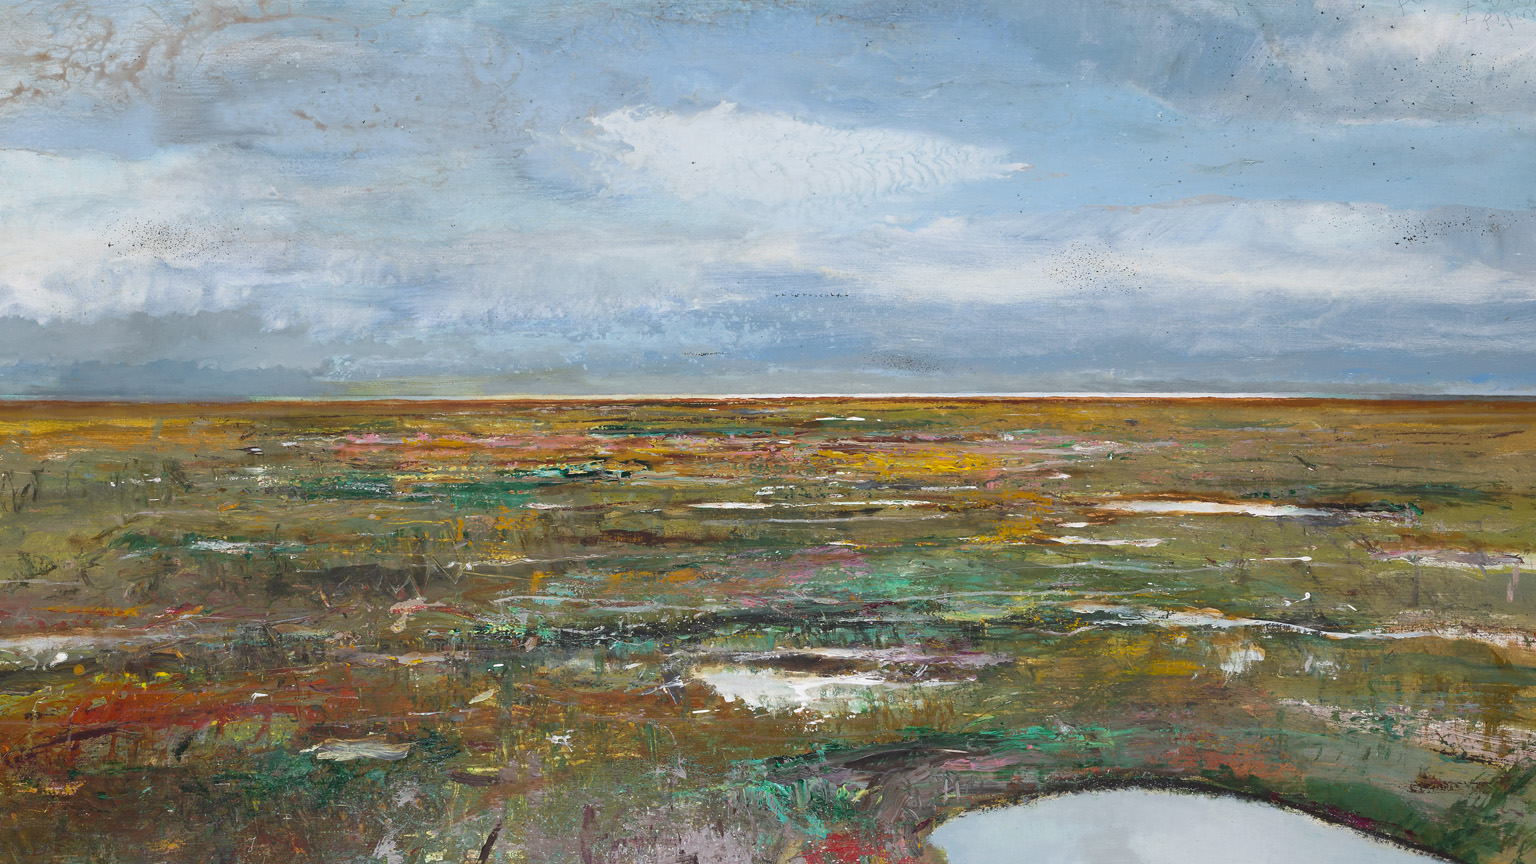 From the hide, Cley marshes, Norfolk 2019 brent geese chatter, wigeon whistles, reed whispers, mixed media on paper